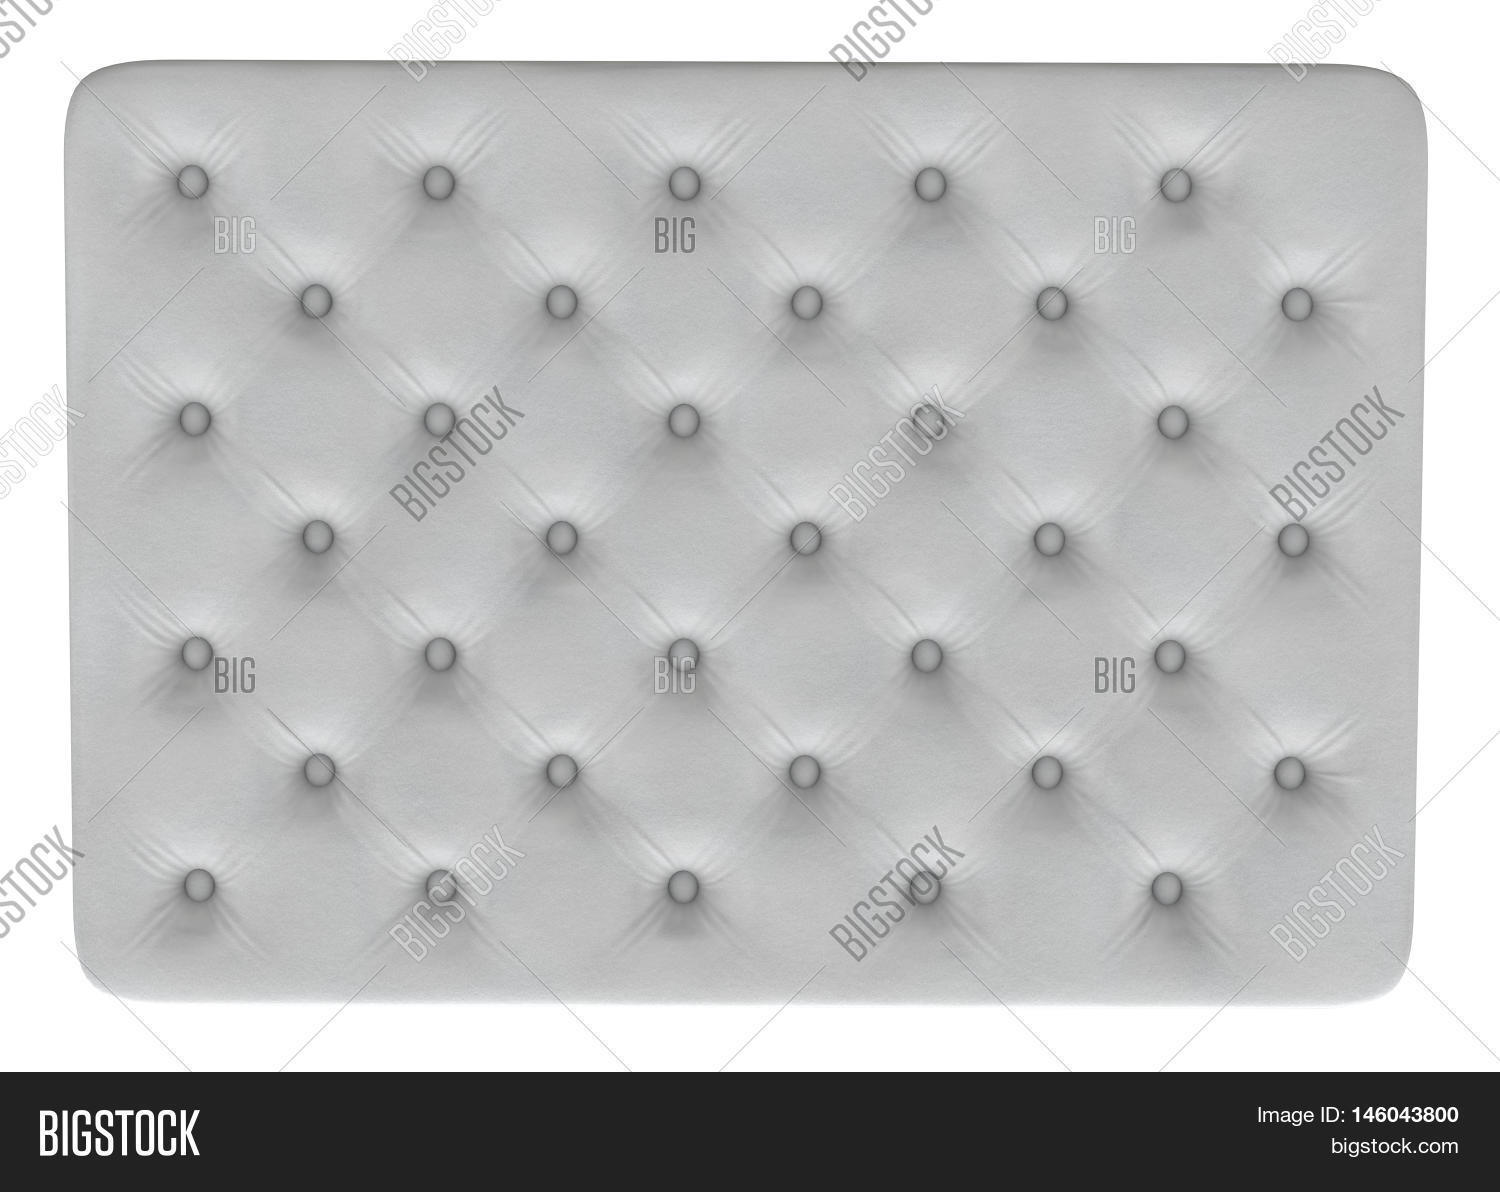 mattress texture. White Mattress Texture 3D Render Sheet, Bed, Bedding, Pattern, Fabric, E